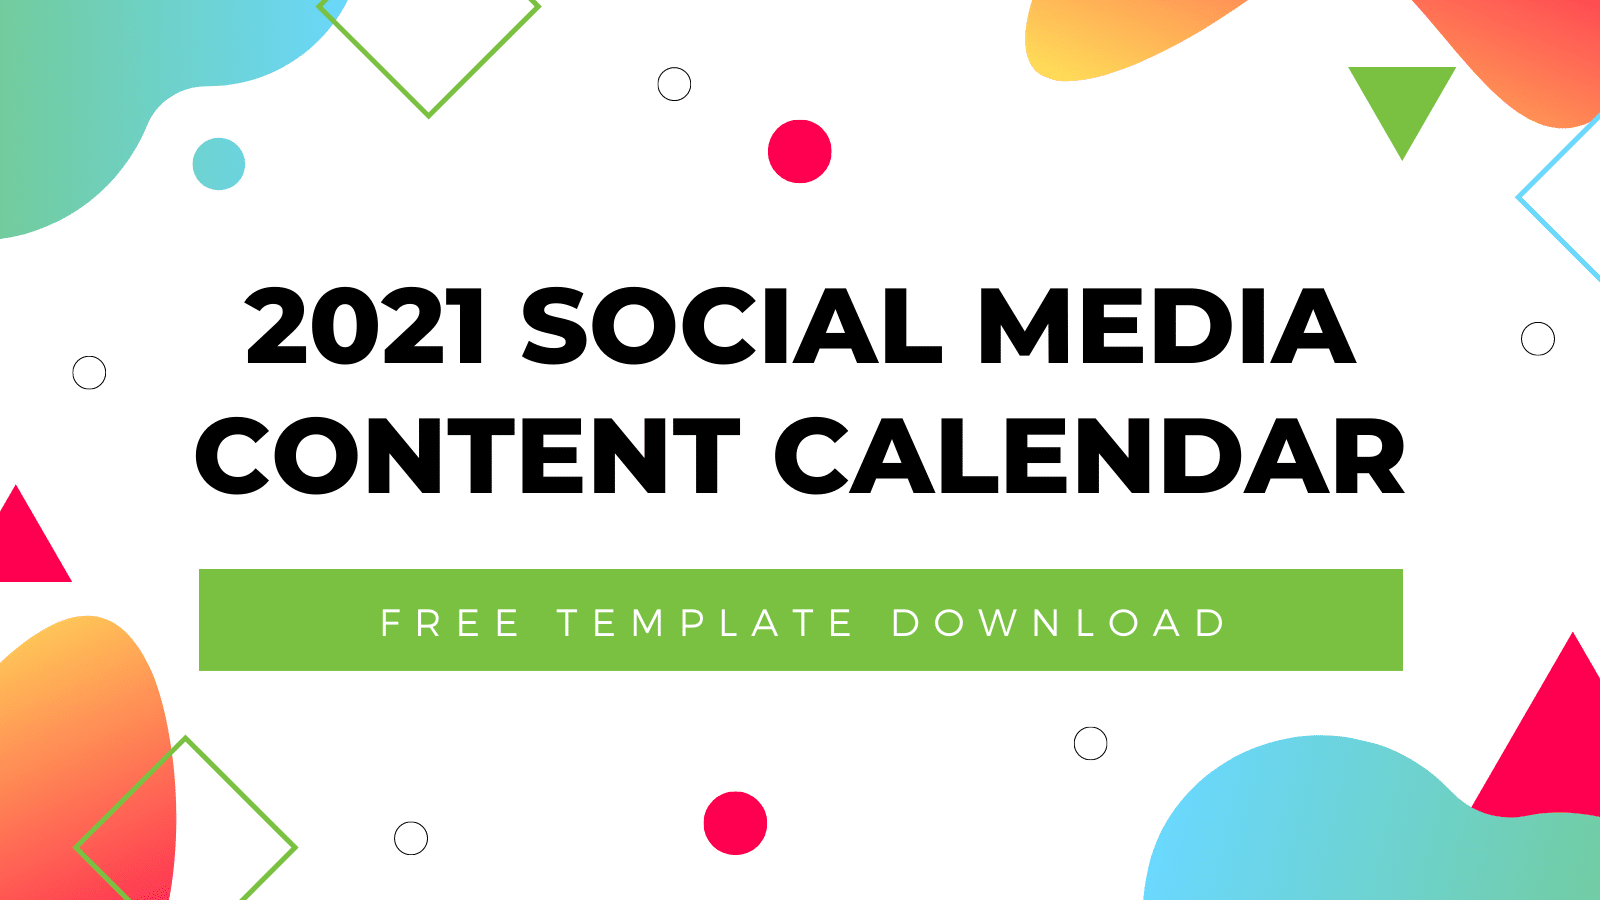 2021 Social Media Content Calendar Template | Free Download pertaining to Lesson Plan Calendar Template 2021